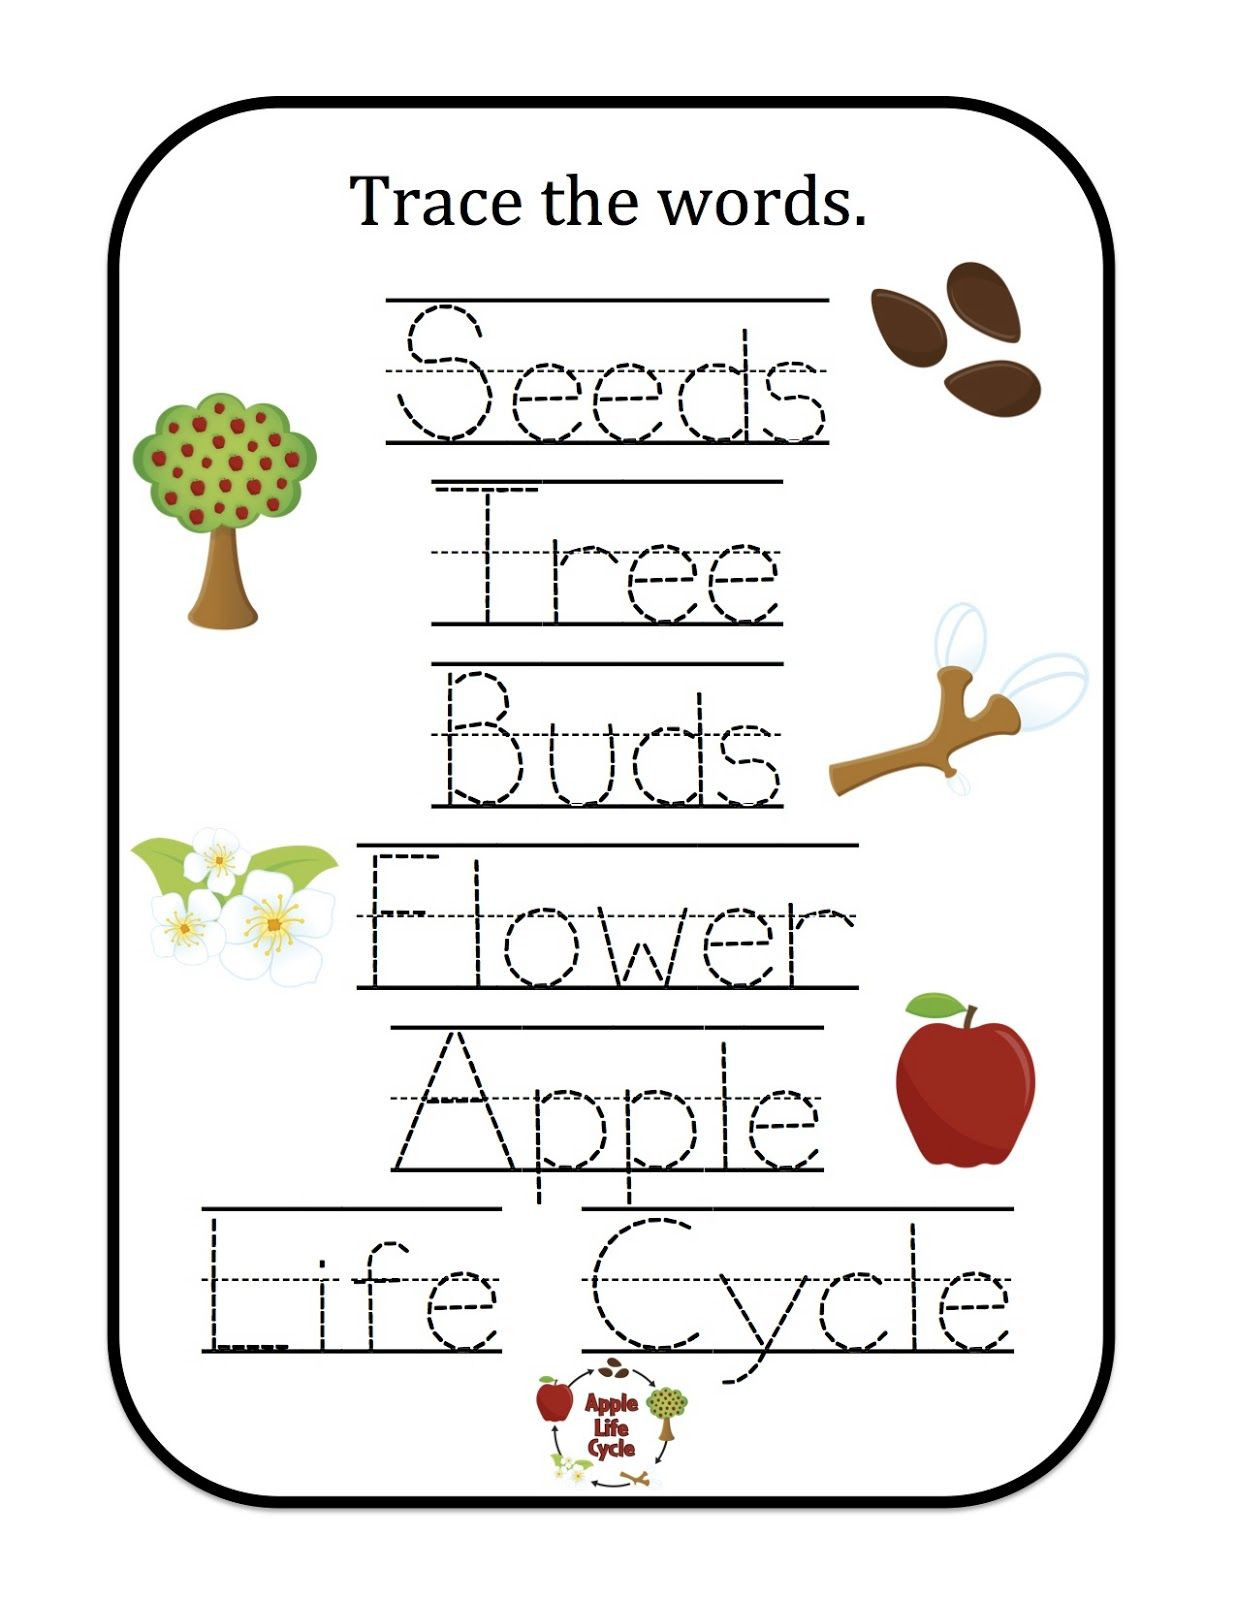 Apple Worksheets Preschool Apple Trace the Words 1 236—1 600 Pixels